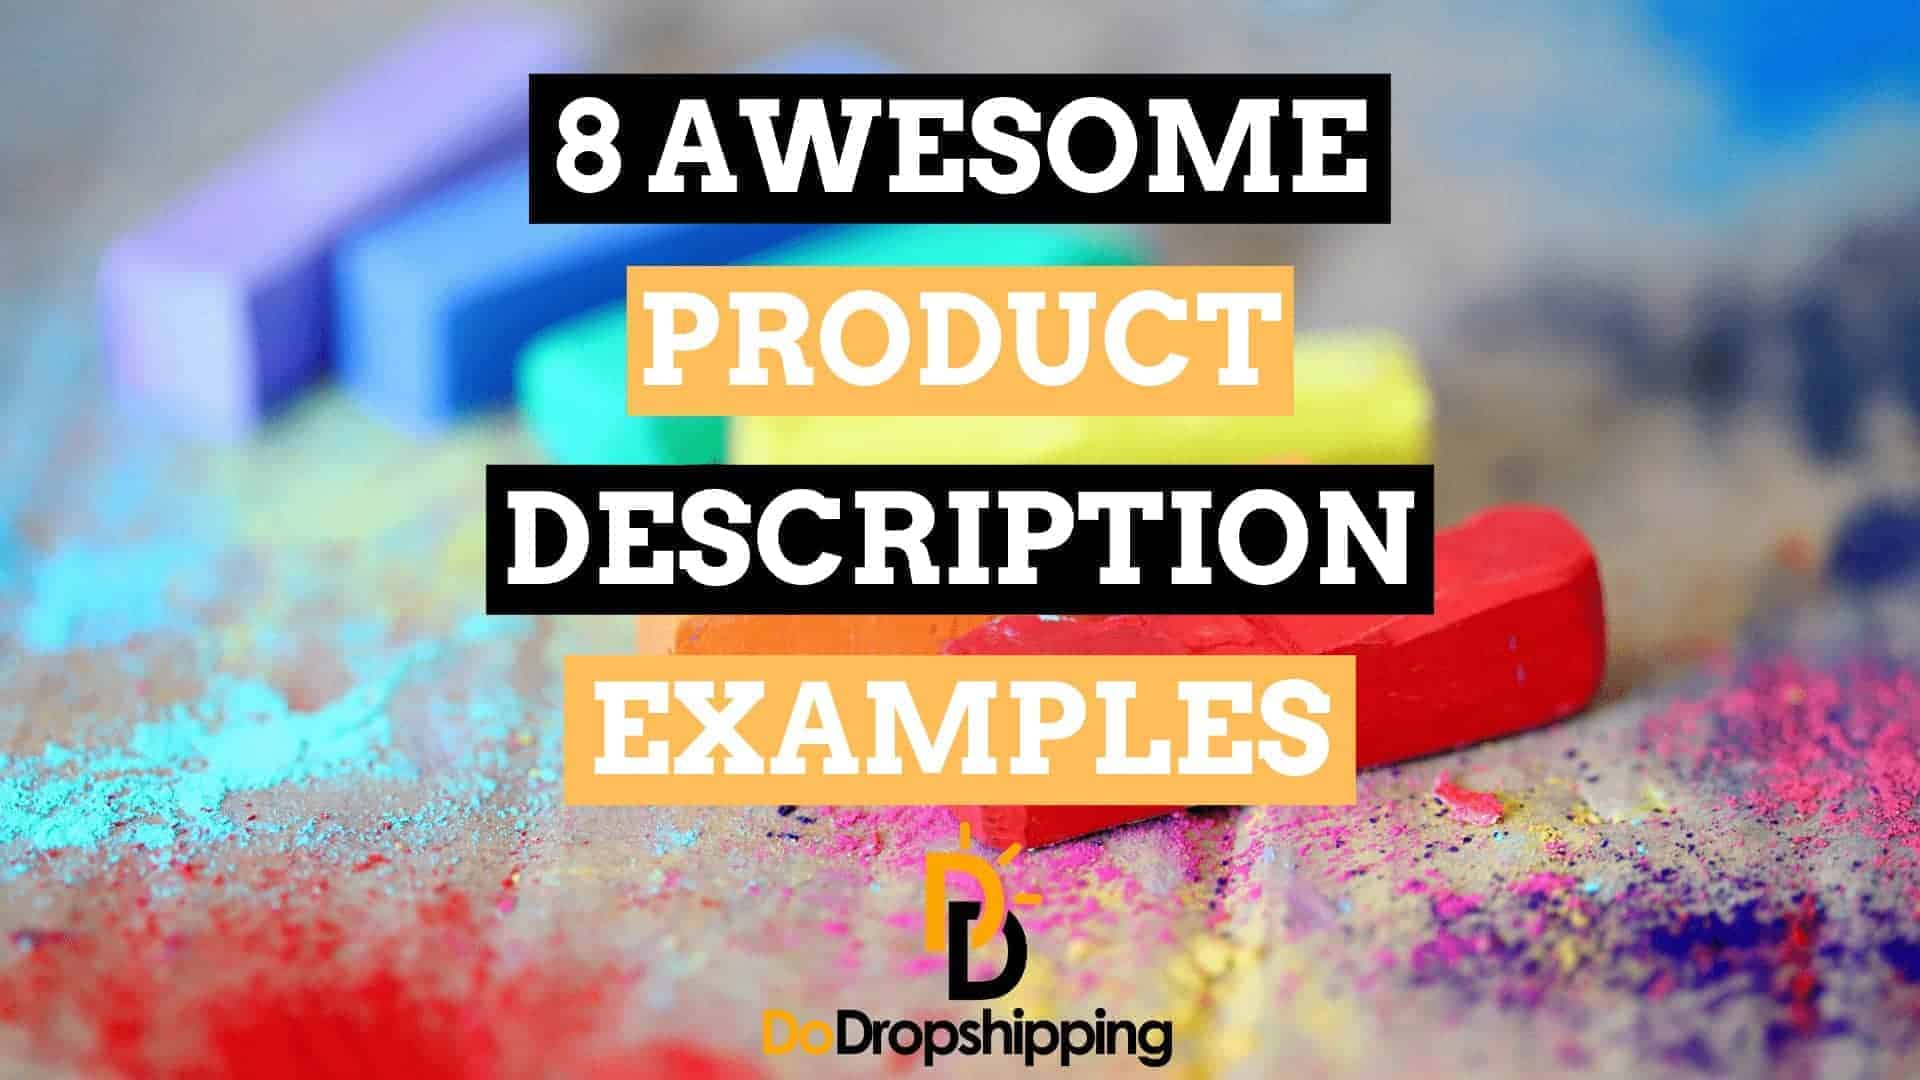 8 Awesome Dropshipping Product Description Examples | Inspiration